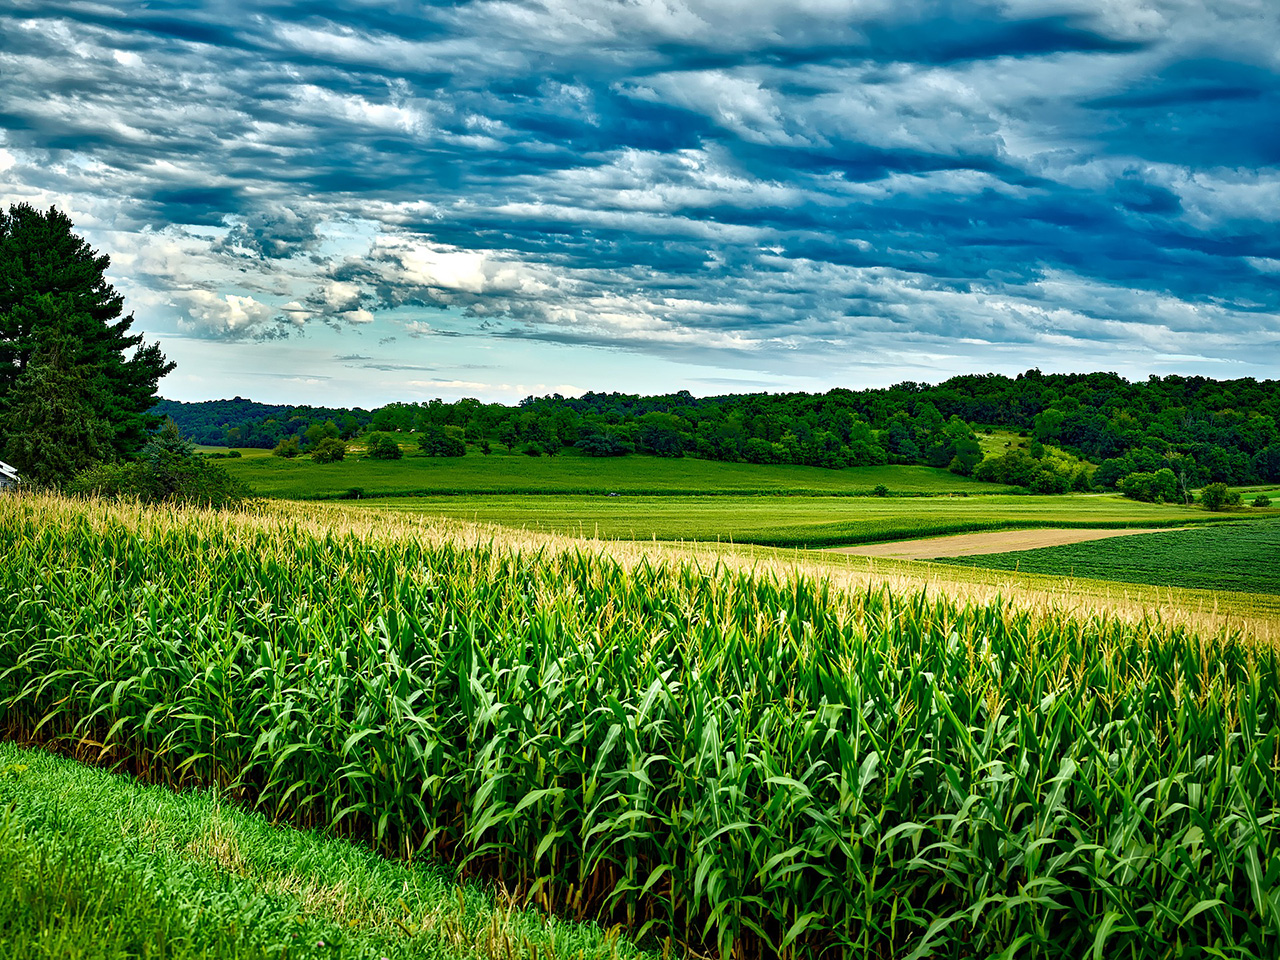 Image of a vast land of crops.